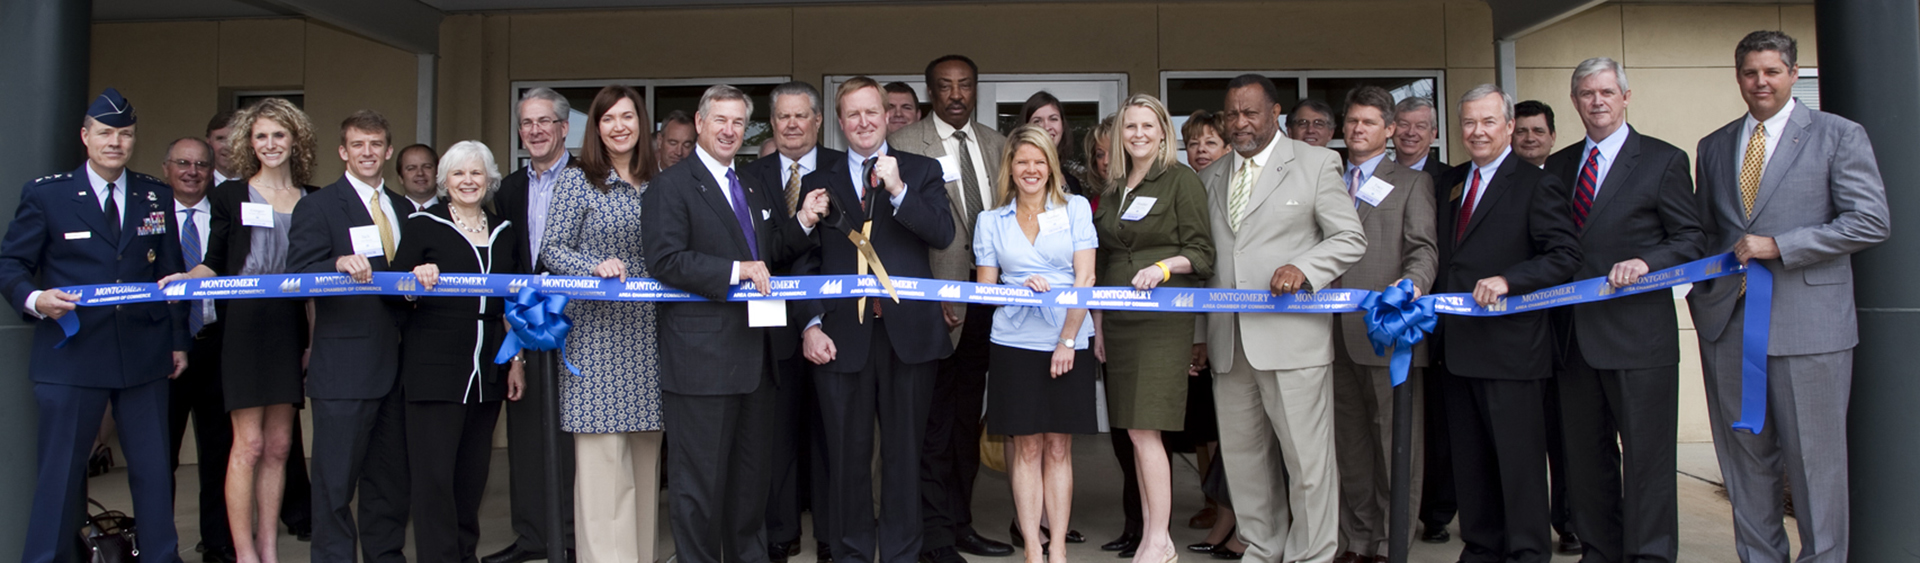 Small Business Resource Center, Ribbon Cutting, Montgomery Area Chamber of Commerce, Montgomery Chamber, MGMChamber, Montgomery Alabama